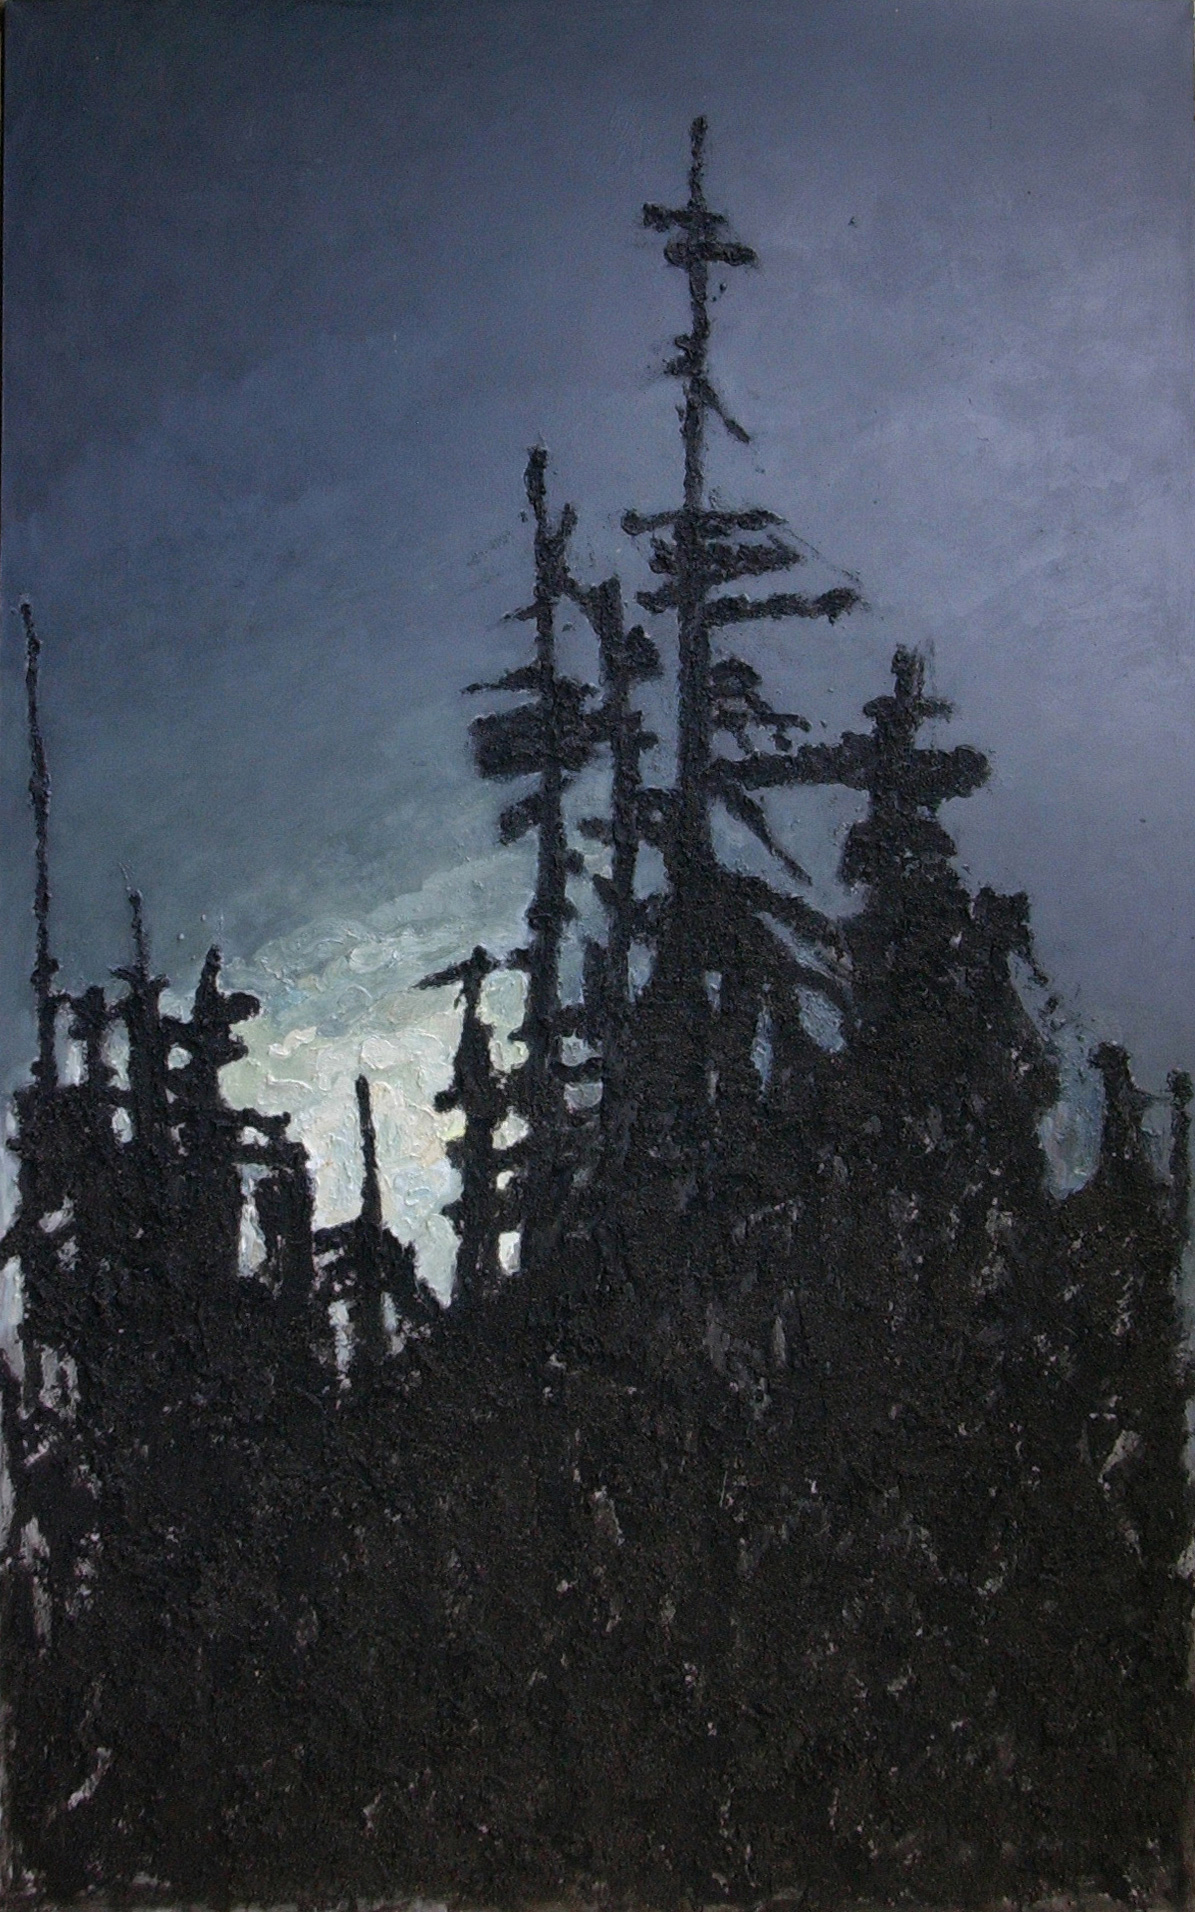 <em>Illuminated</em>. 2007. Oil on canvas. 240x150cm